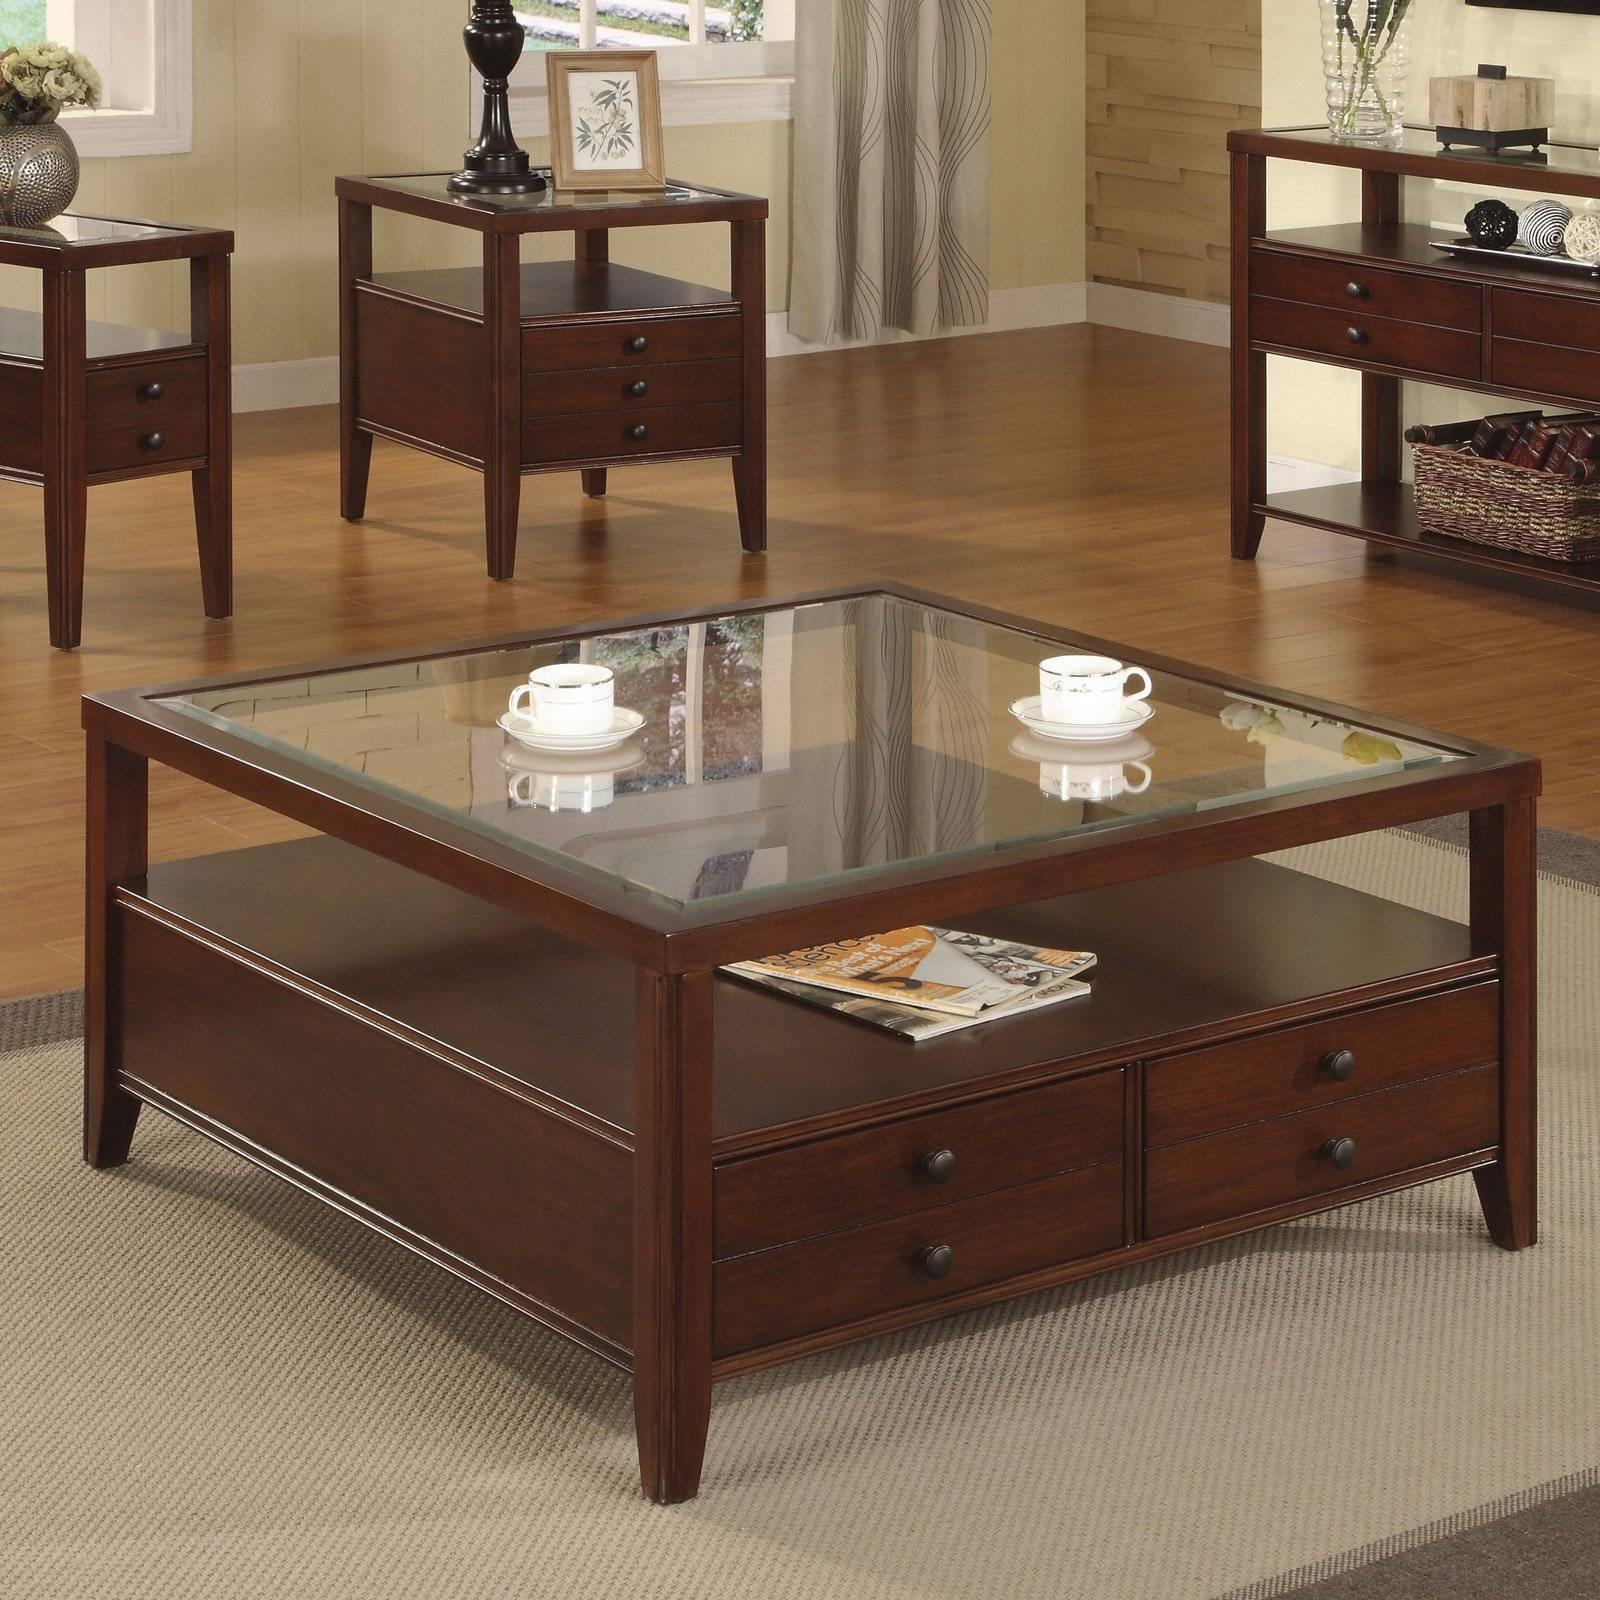 Square Coffee Table With Storage Glass Top With Modern Dark Cherry throughout Large Square Coffee Table With Storage (Image 11 of 15)